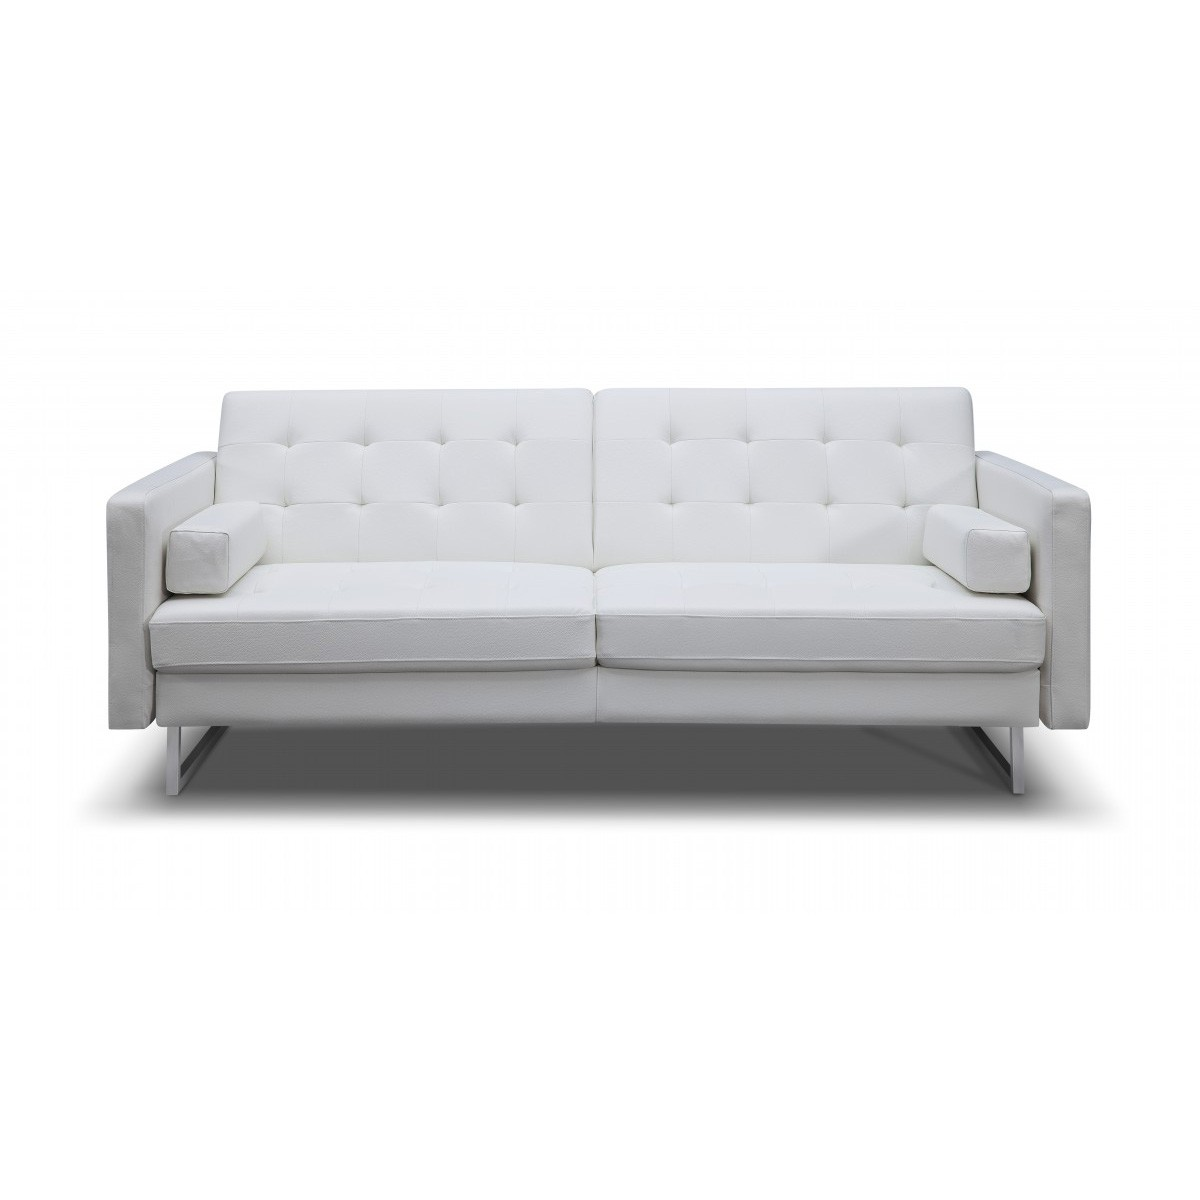 white leather sectional sofa bed photo - 4